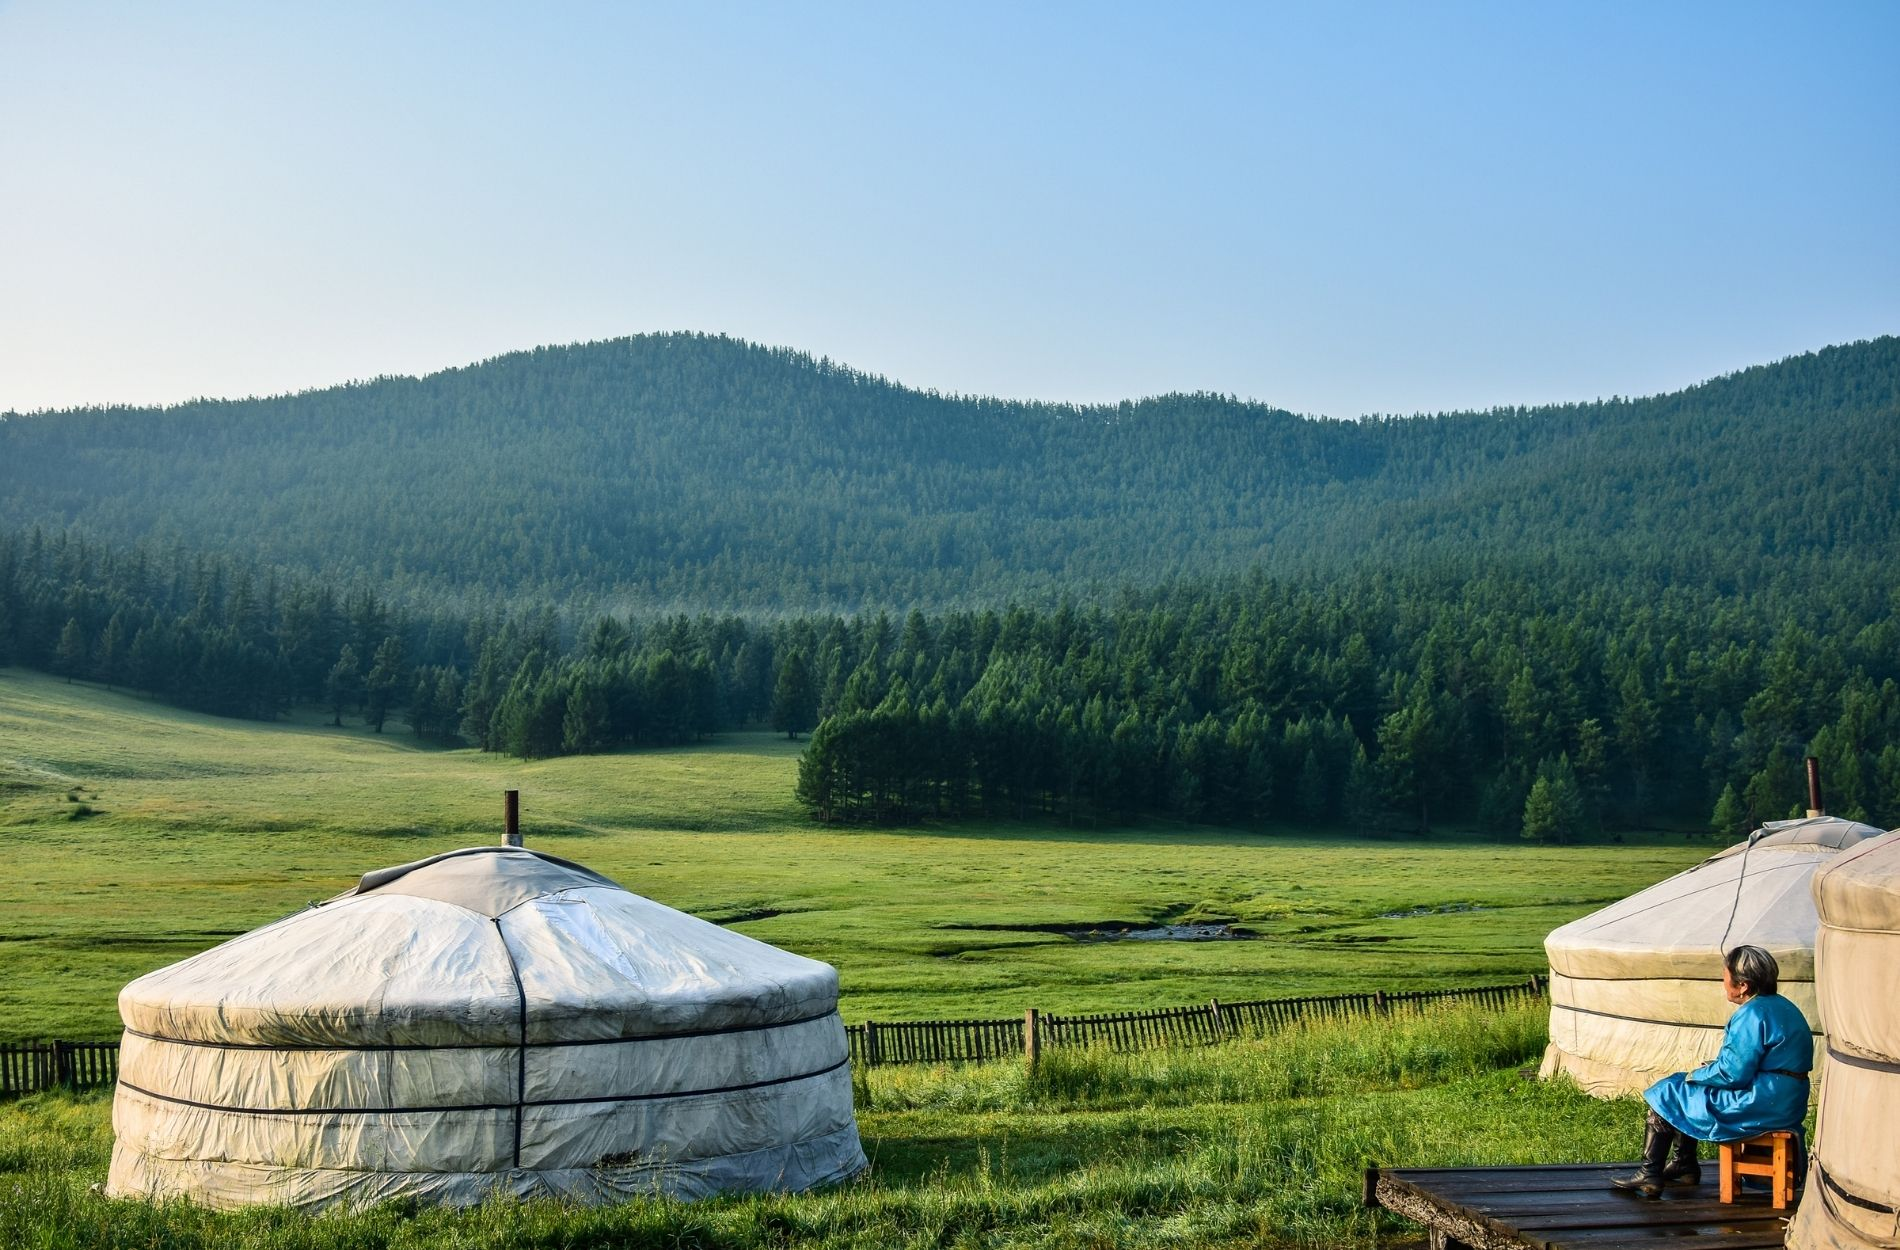 landscapes of mongolia seen during textile hunting trip for liebre style